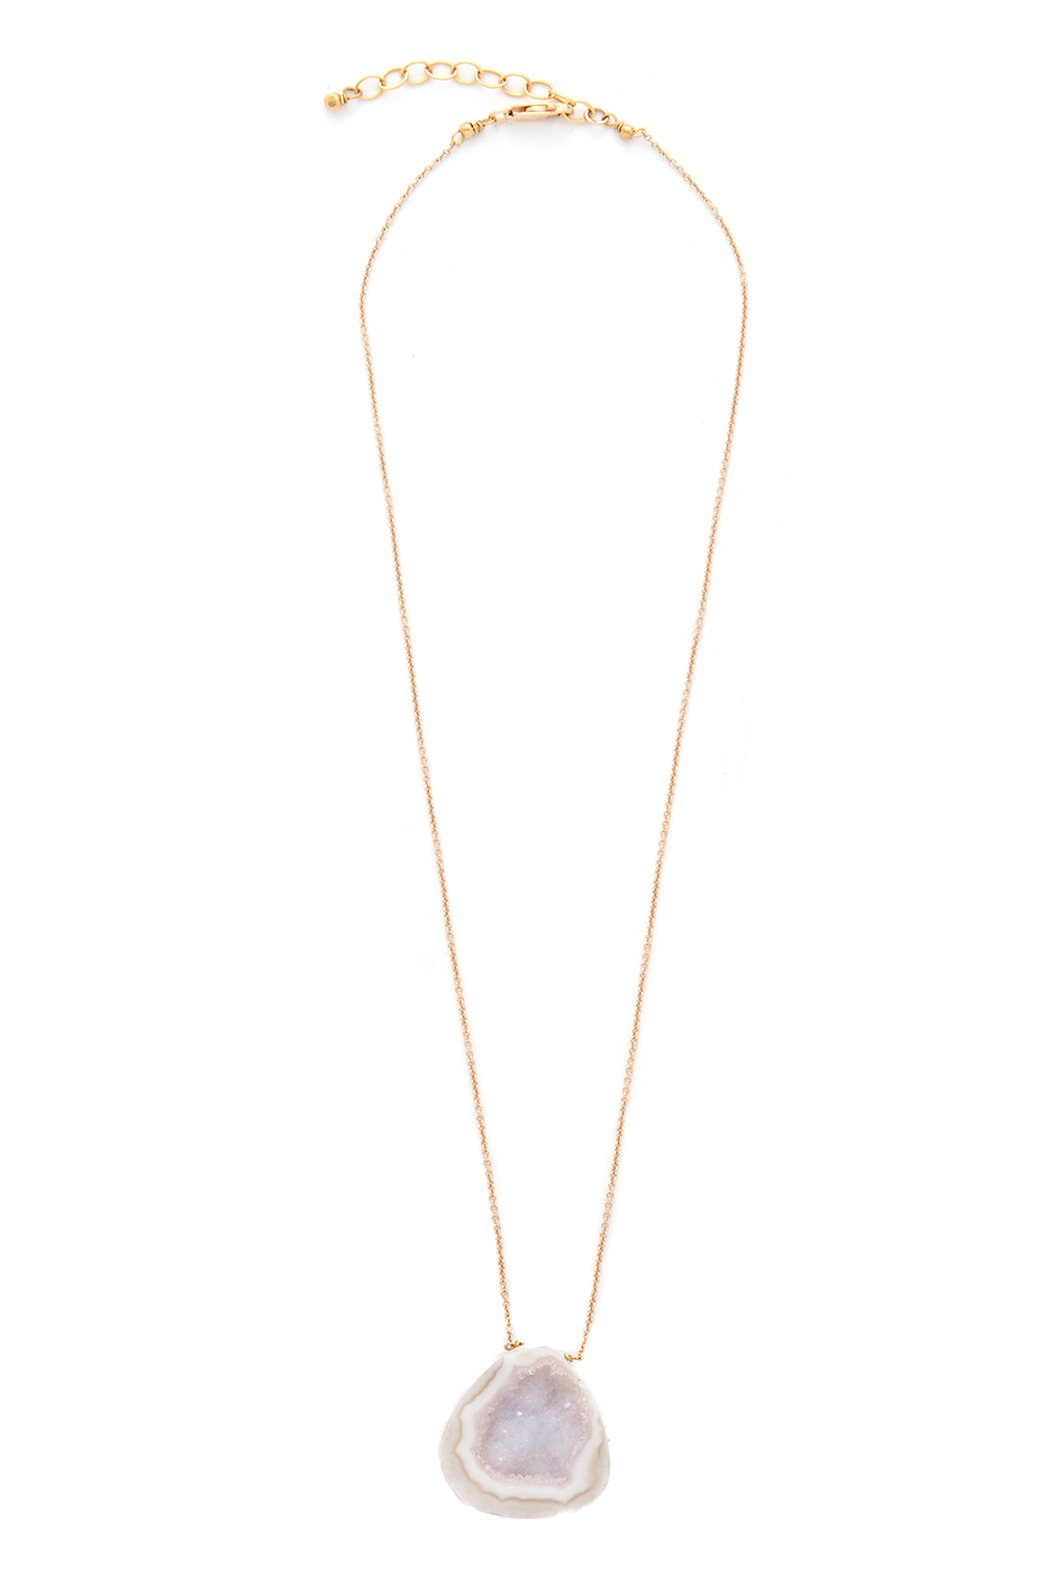 Beth Long Gold Druzy Necklace - Main Image